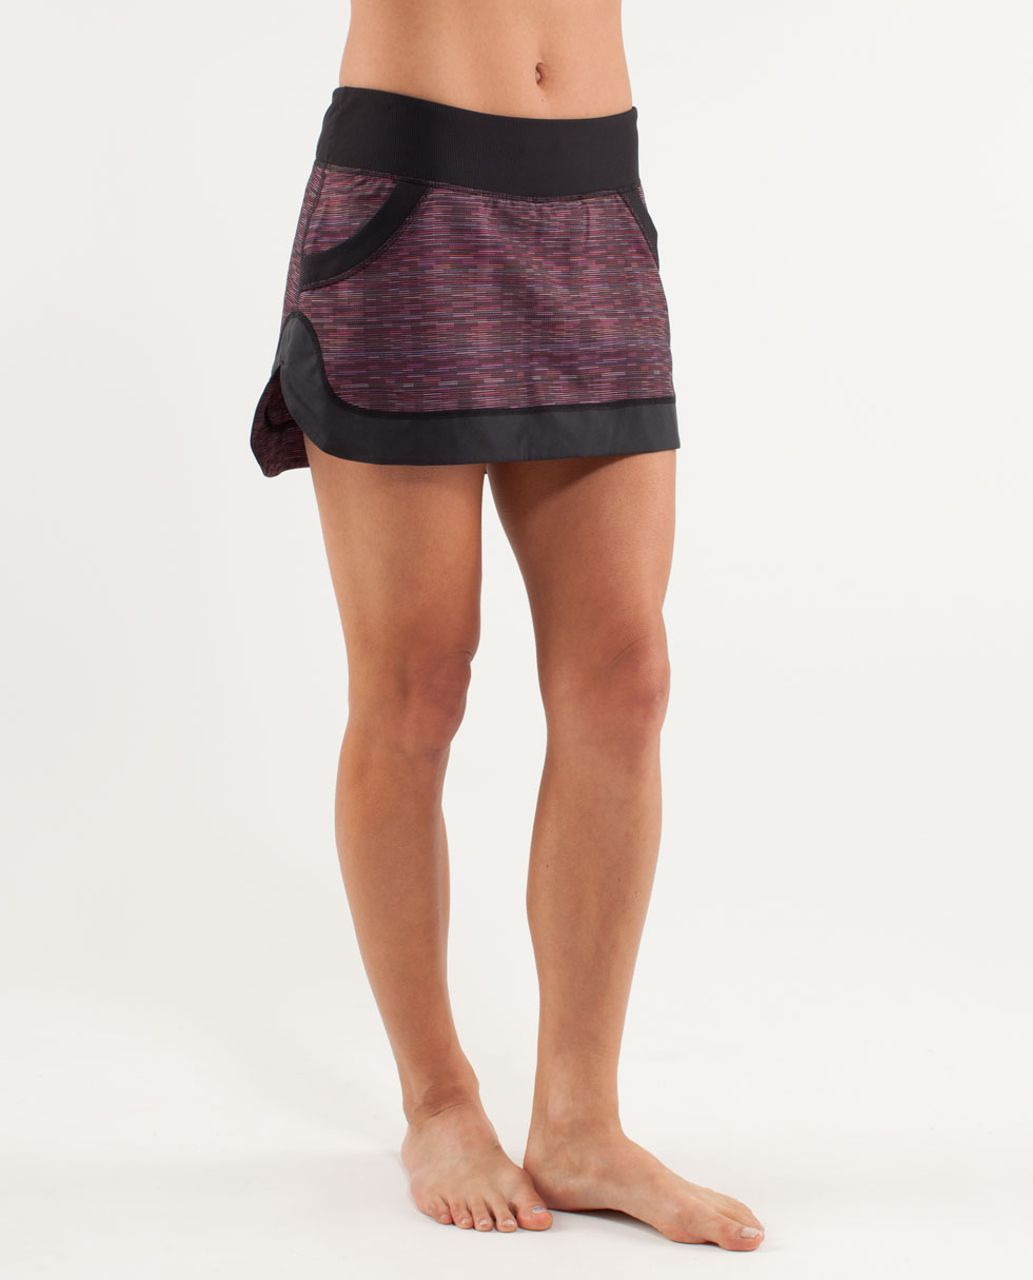 Lululemon Run:  For All Skirt - Wee Are From Space Black March Multi /  Black